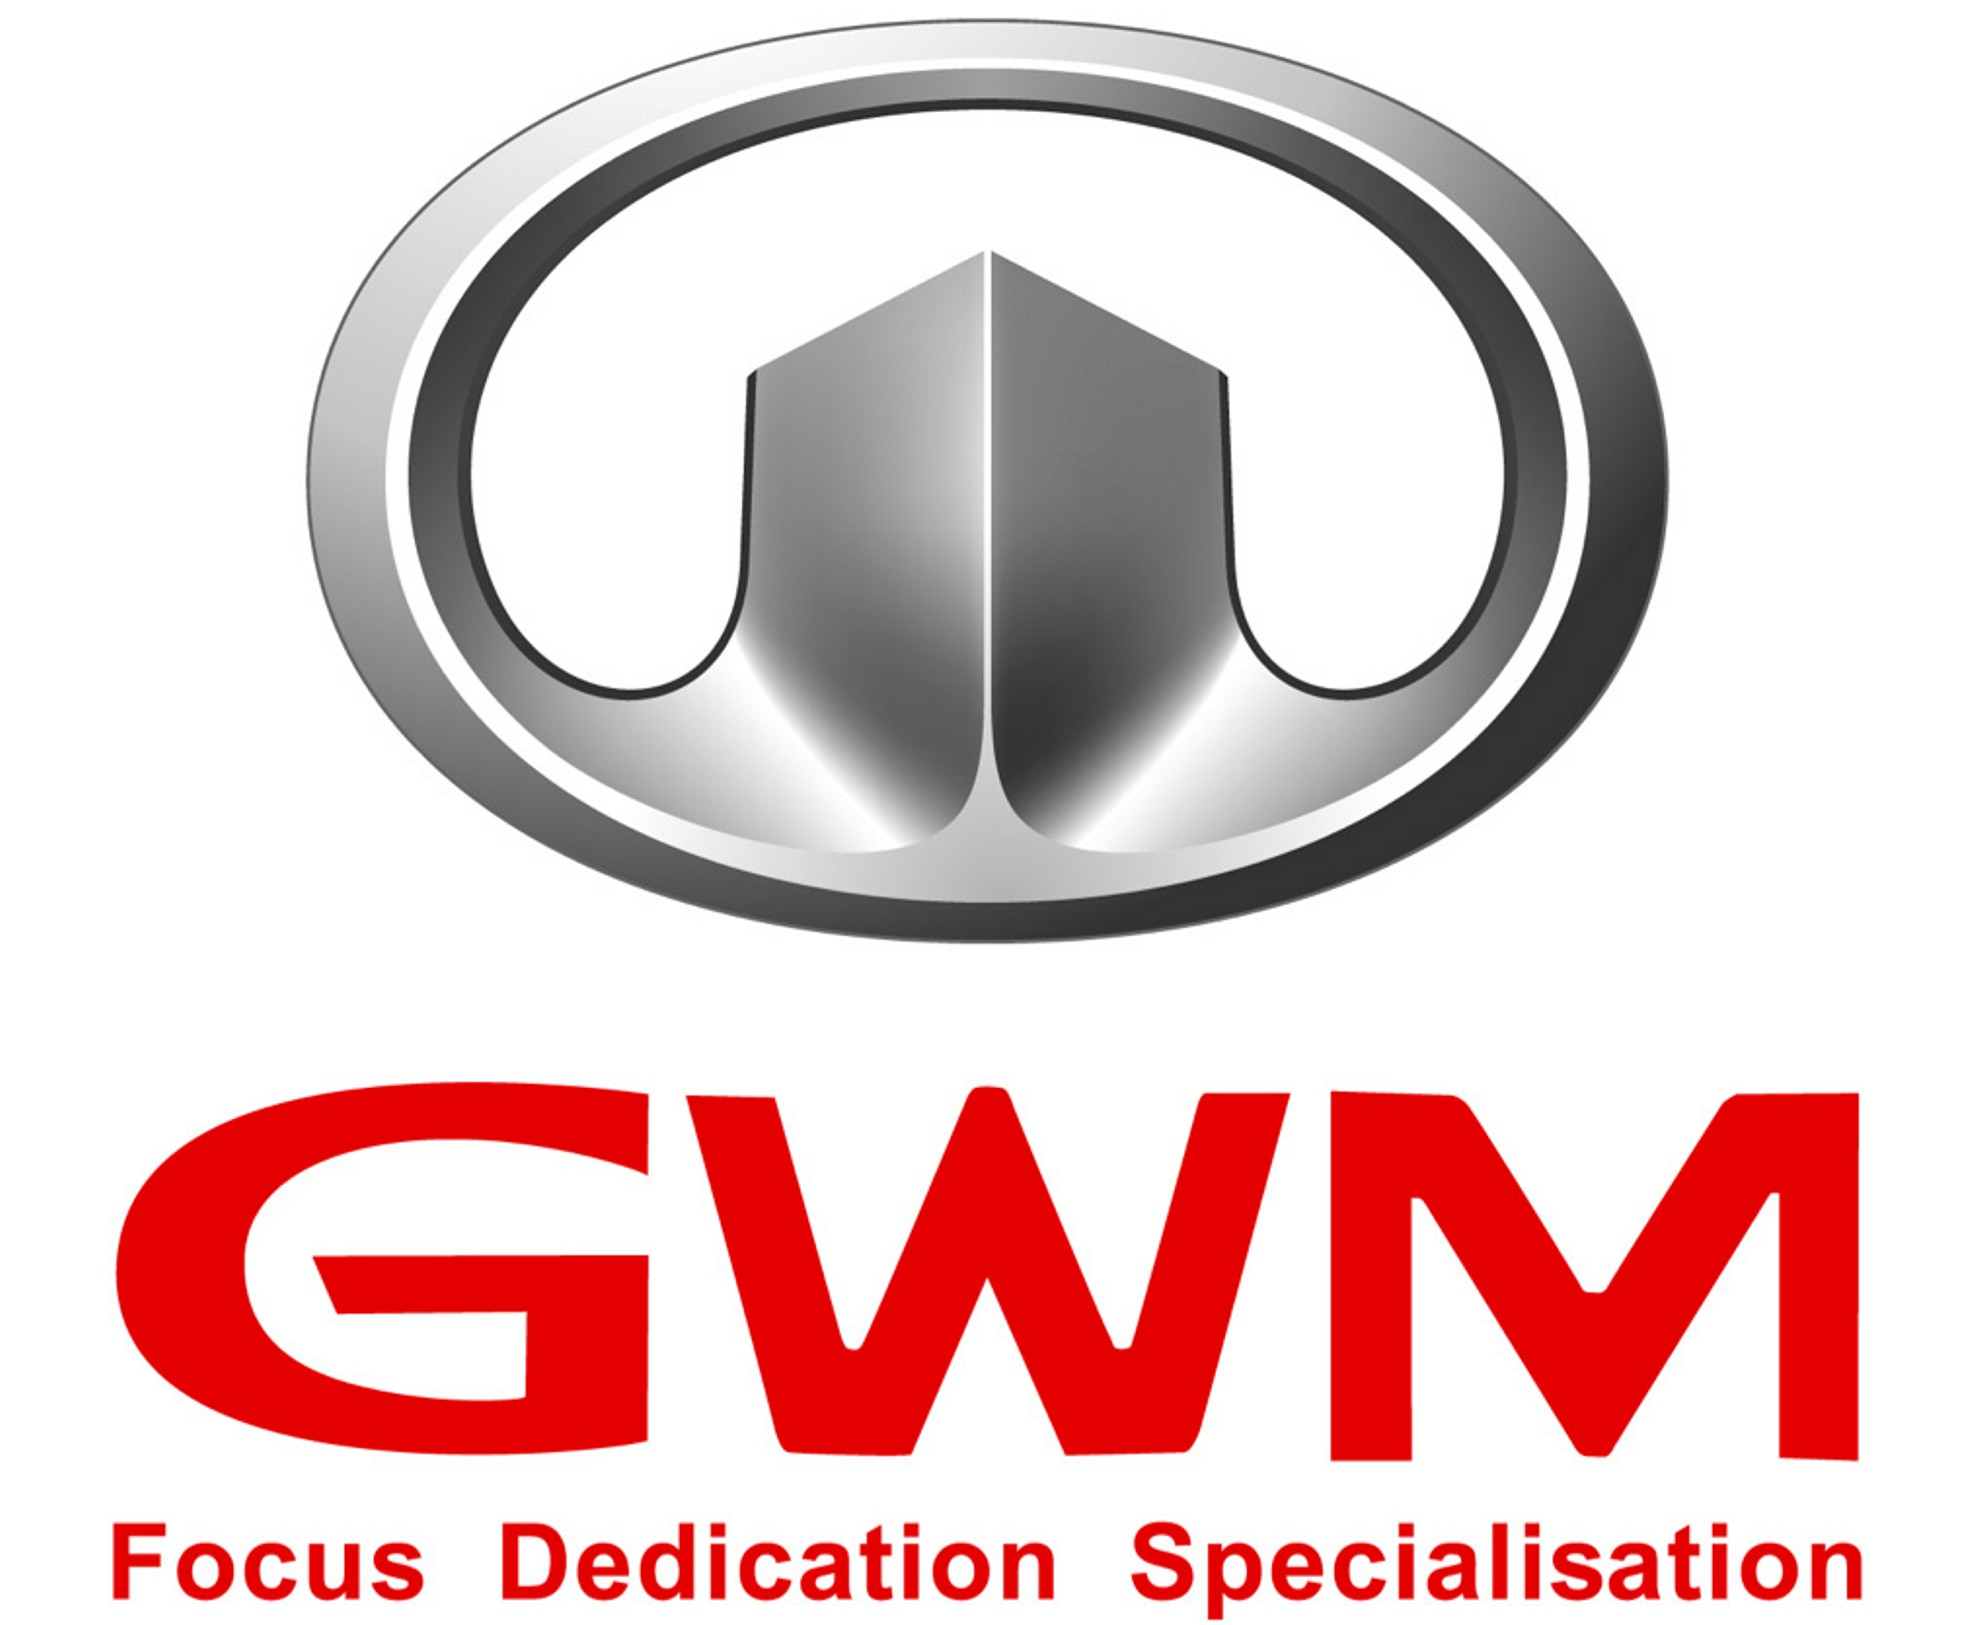 3D Car Shows - GWM INTRODUCES UPDATED CORPORATE IDENTITY: 3d-car-shows.com/gwm-introduces-updated-corporate-identity